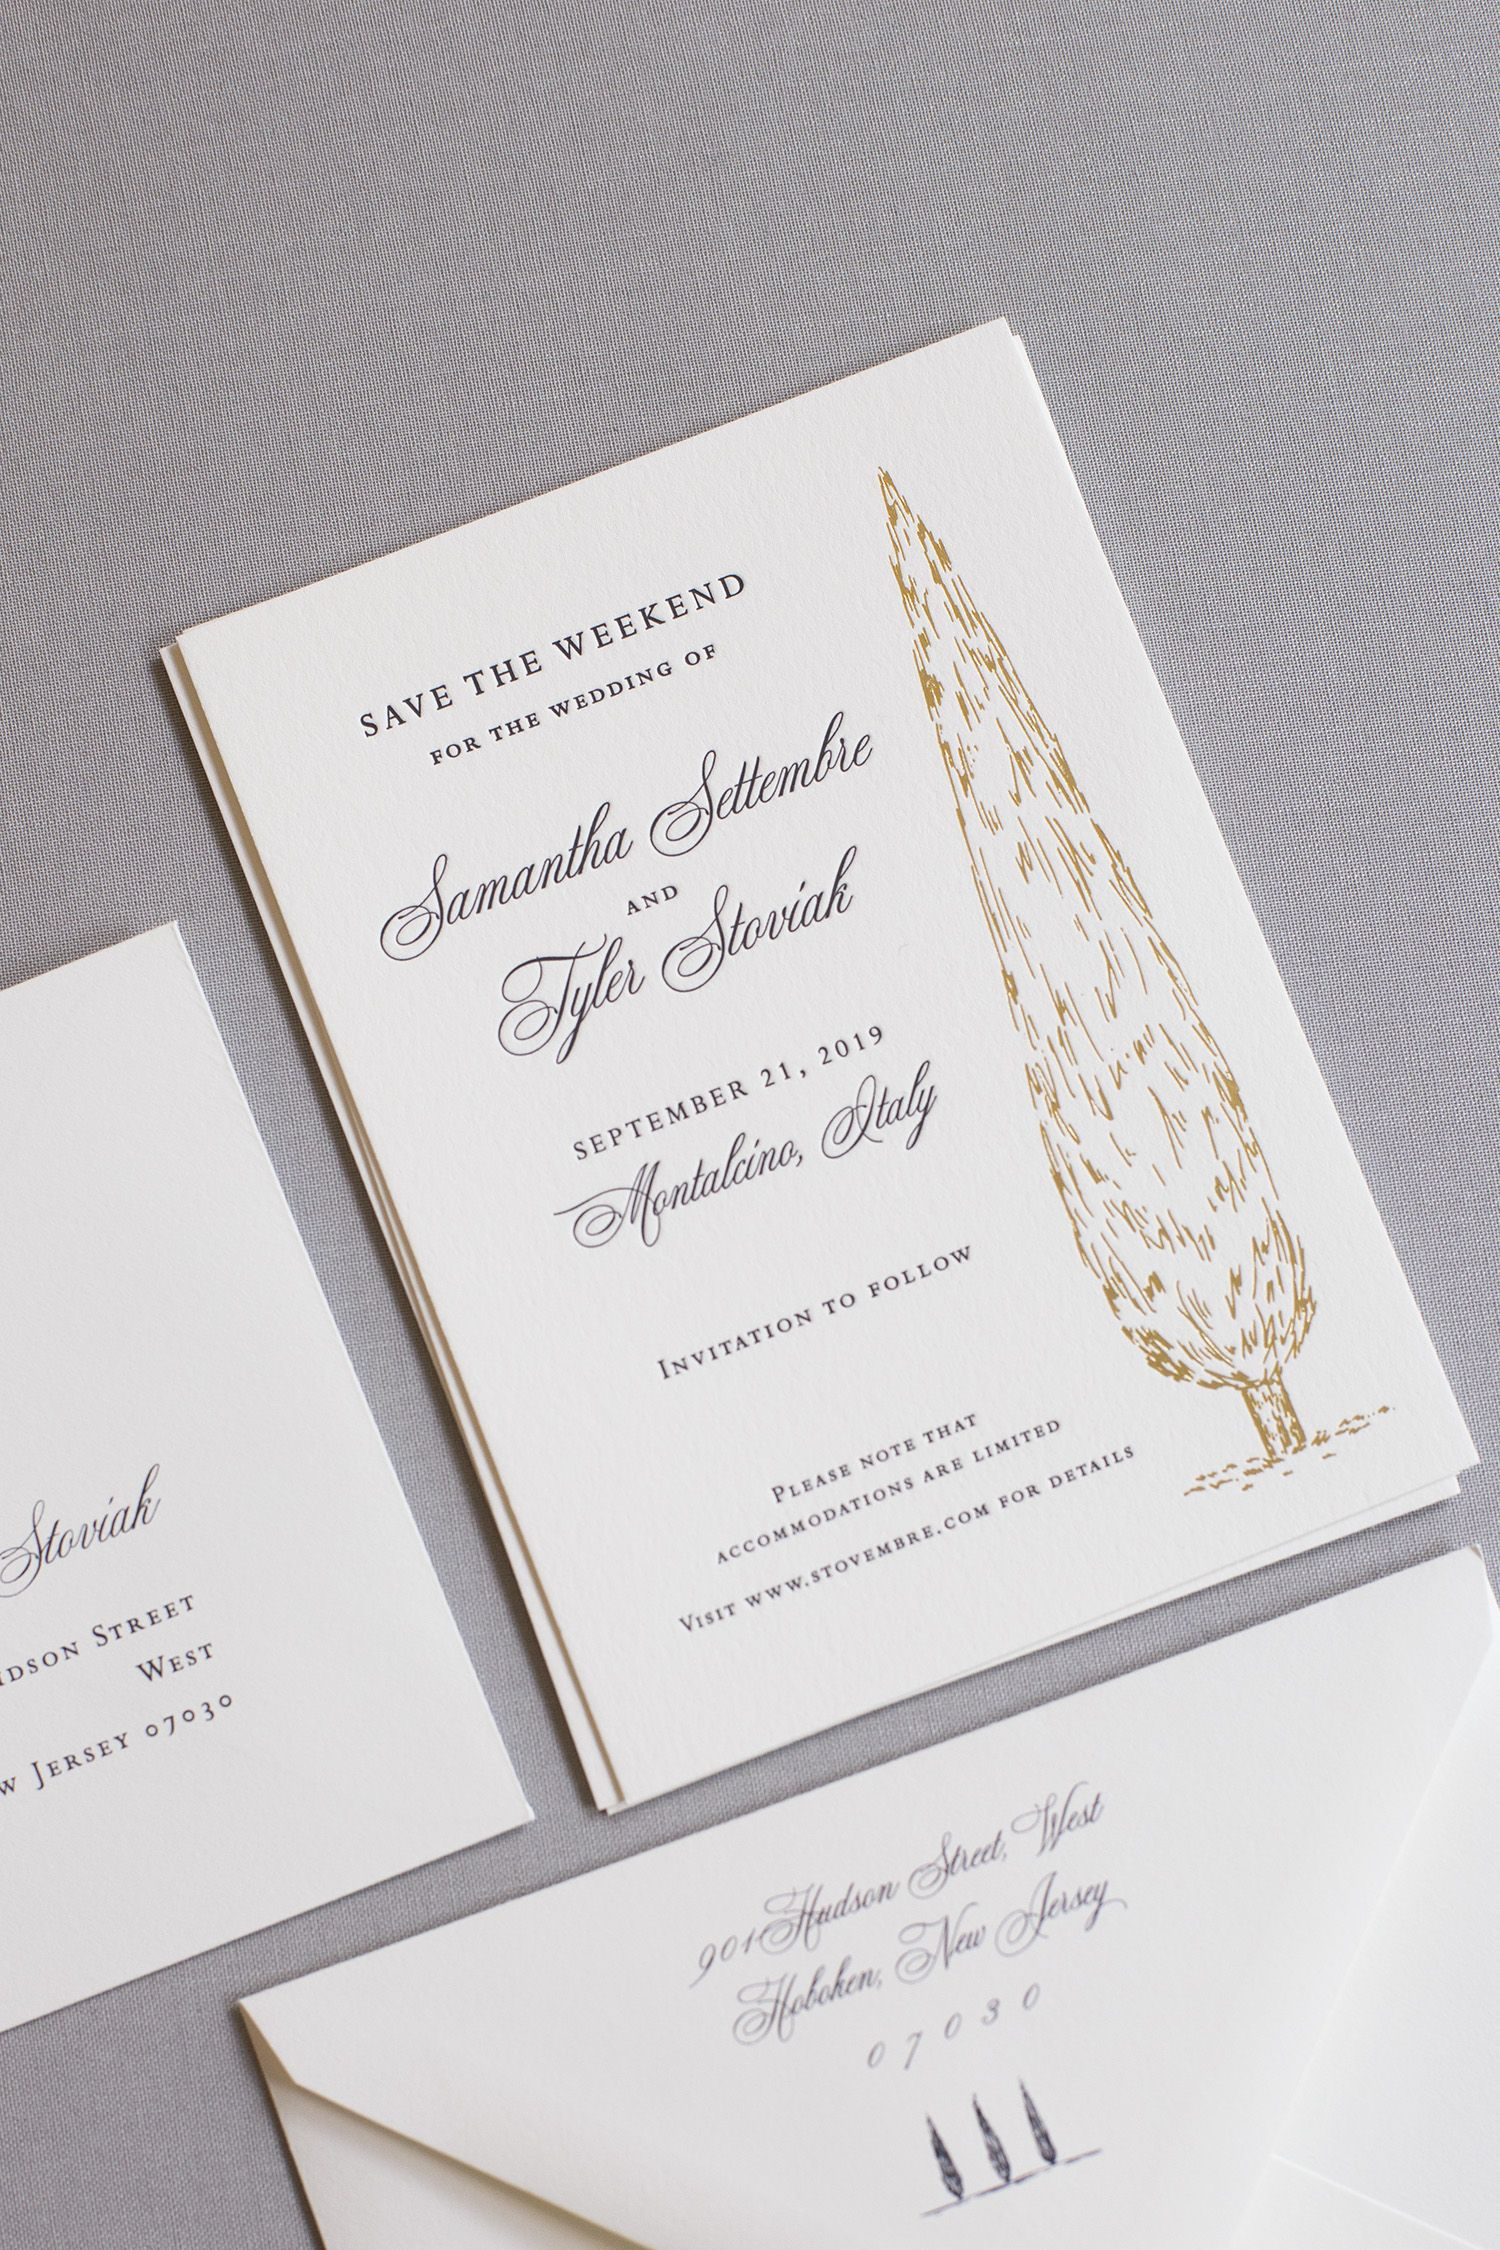 Fourteen Forty Is A Wedding Invitation Design Studio Located In New York City We Create Beautiful Custom Wedding Invitations Wedding Invitations Invitations